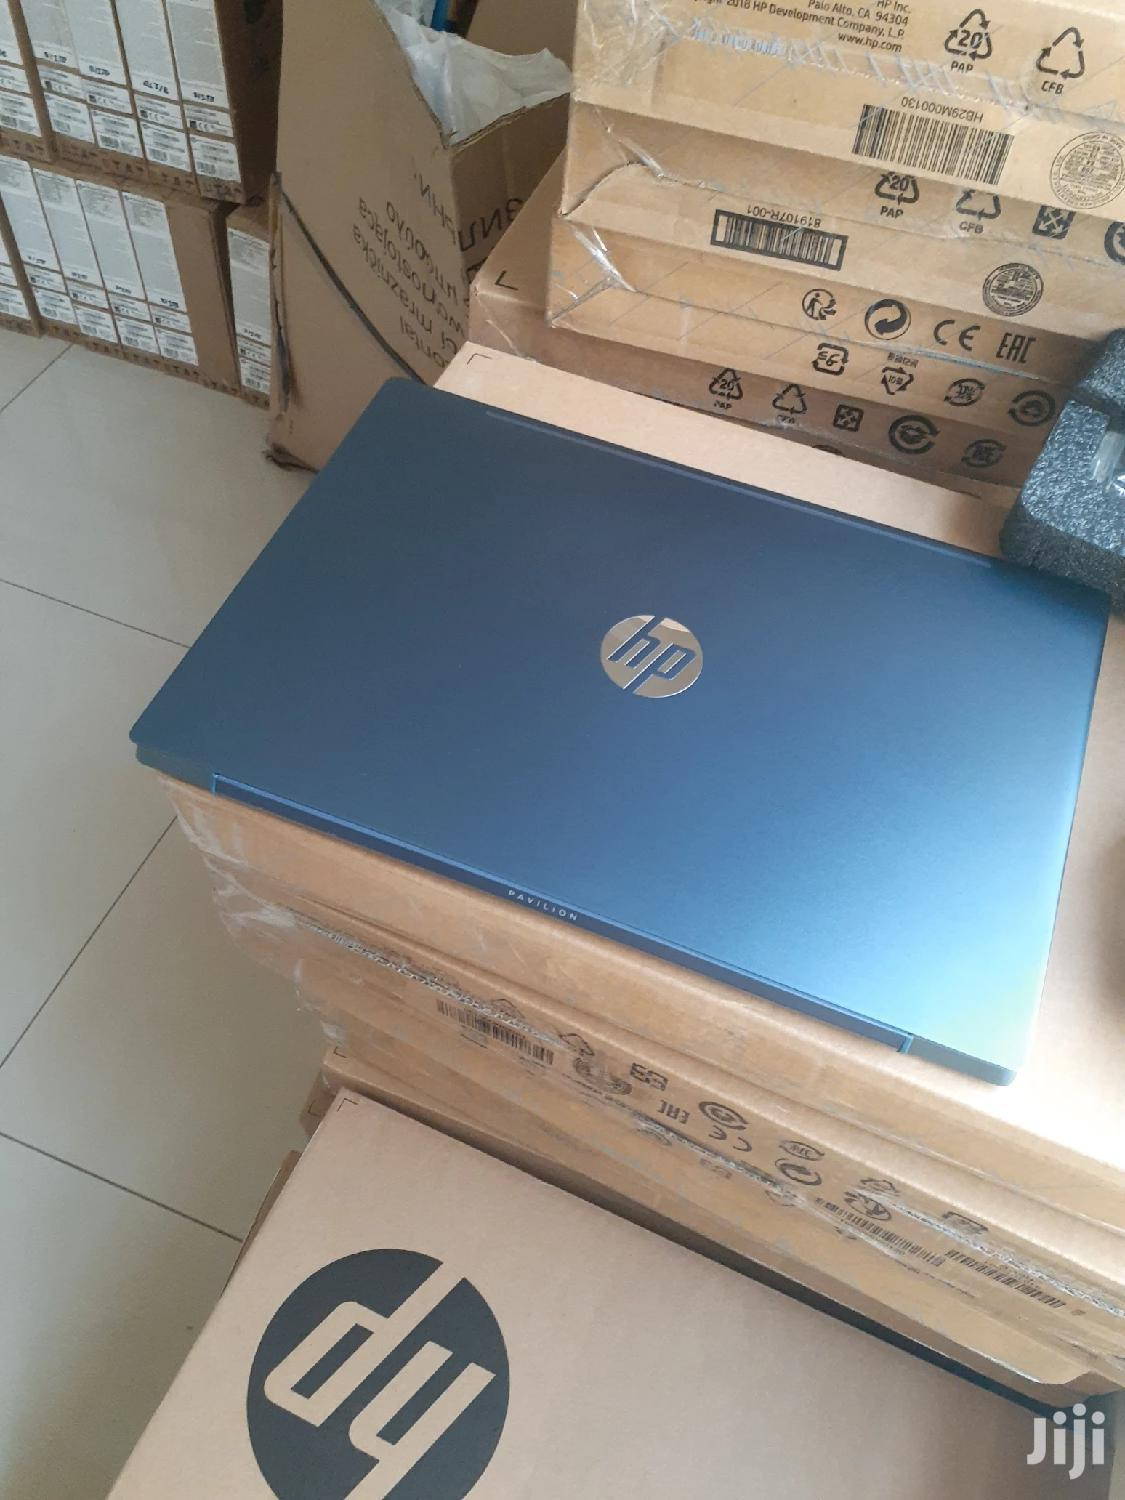 Archive: New Laptop HP Pavilion 15t 8GB Intel Core I7 HDD 1T